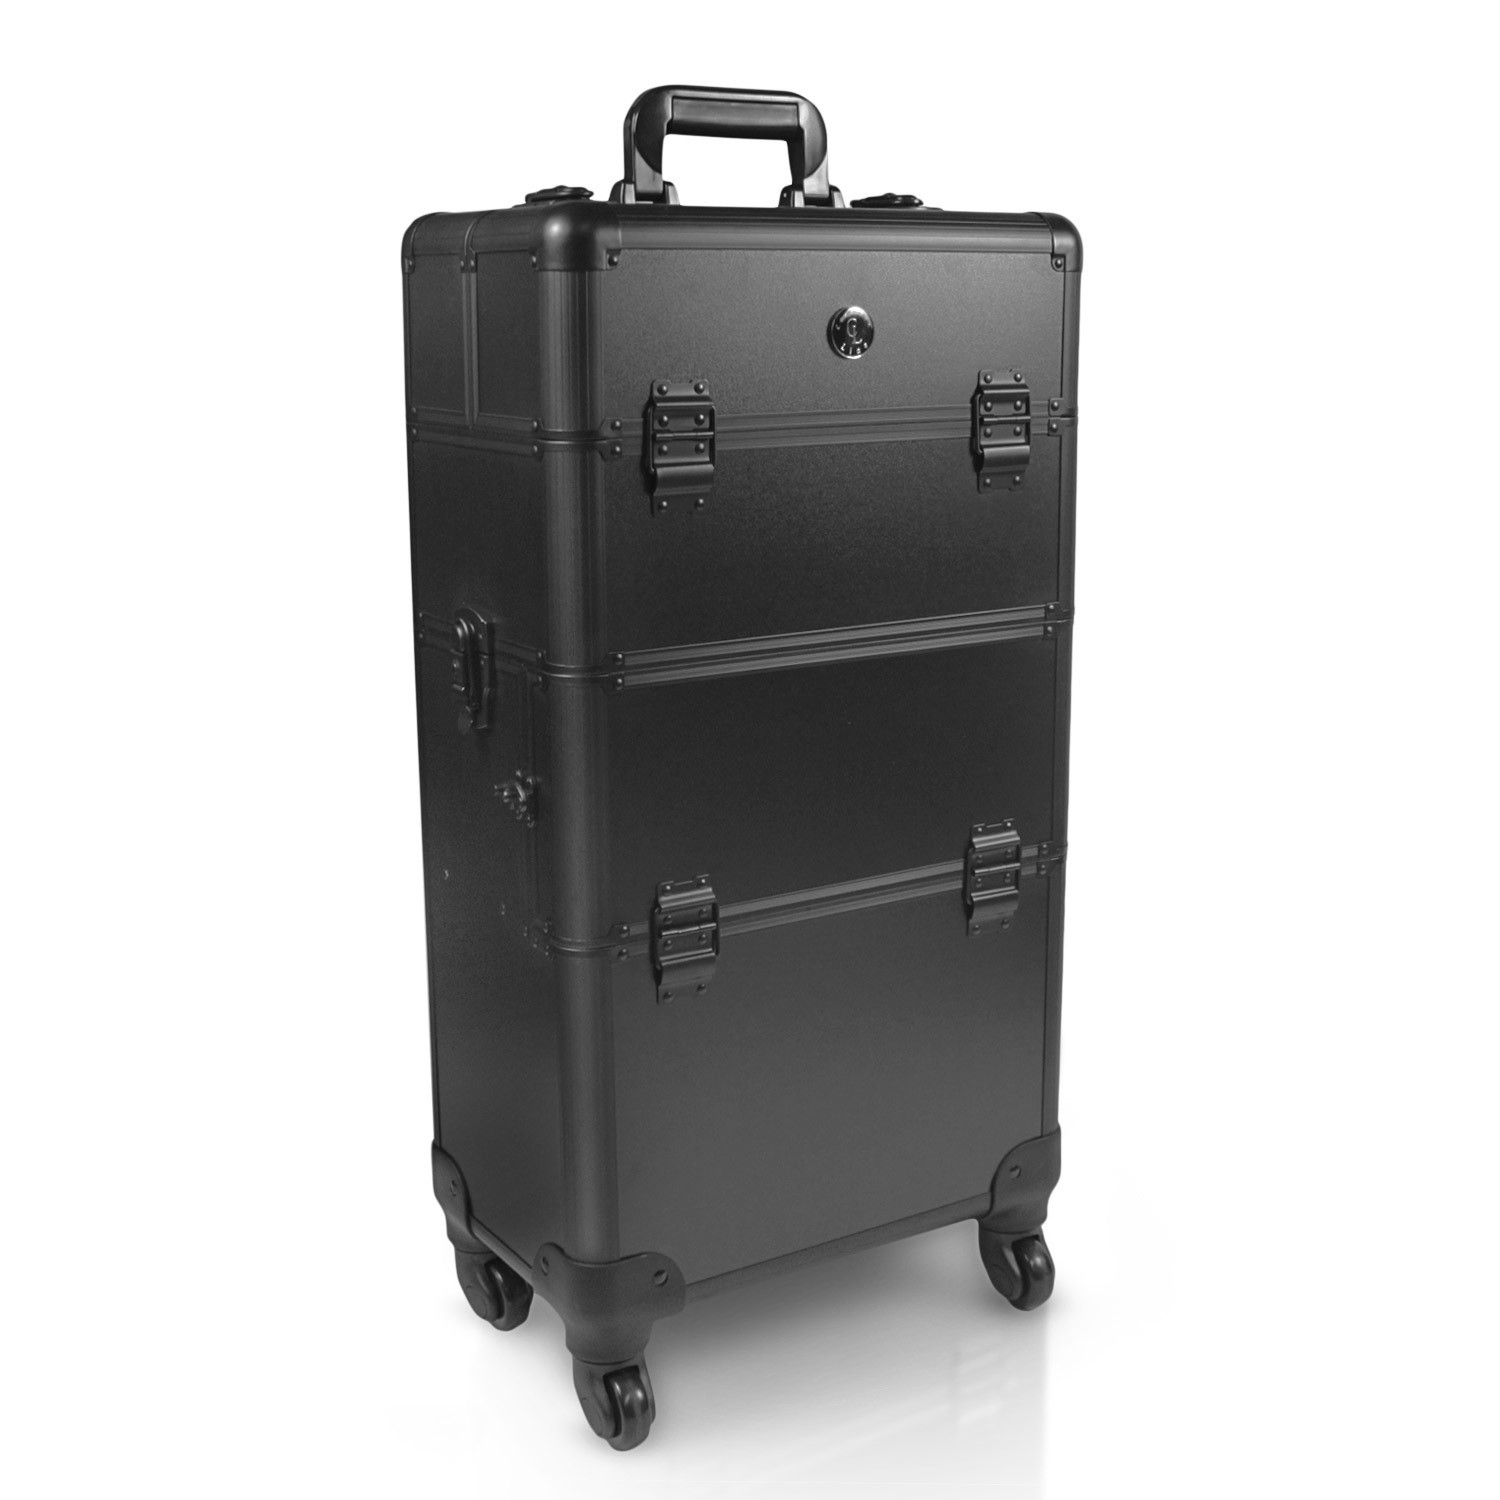 hairdresser suitcase visagists trolley pilot case beauty case makeup hairdressing trolley ebay. Black Bedroom Furniture Sets. Home Design Ideas